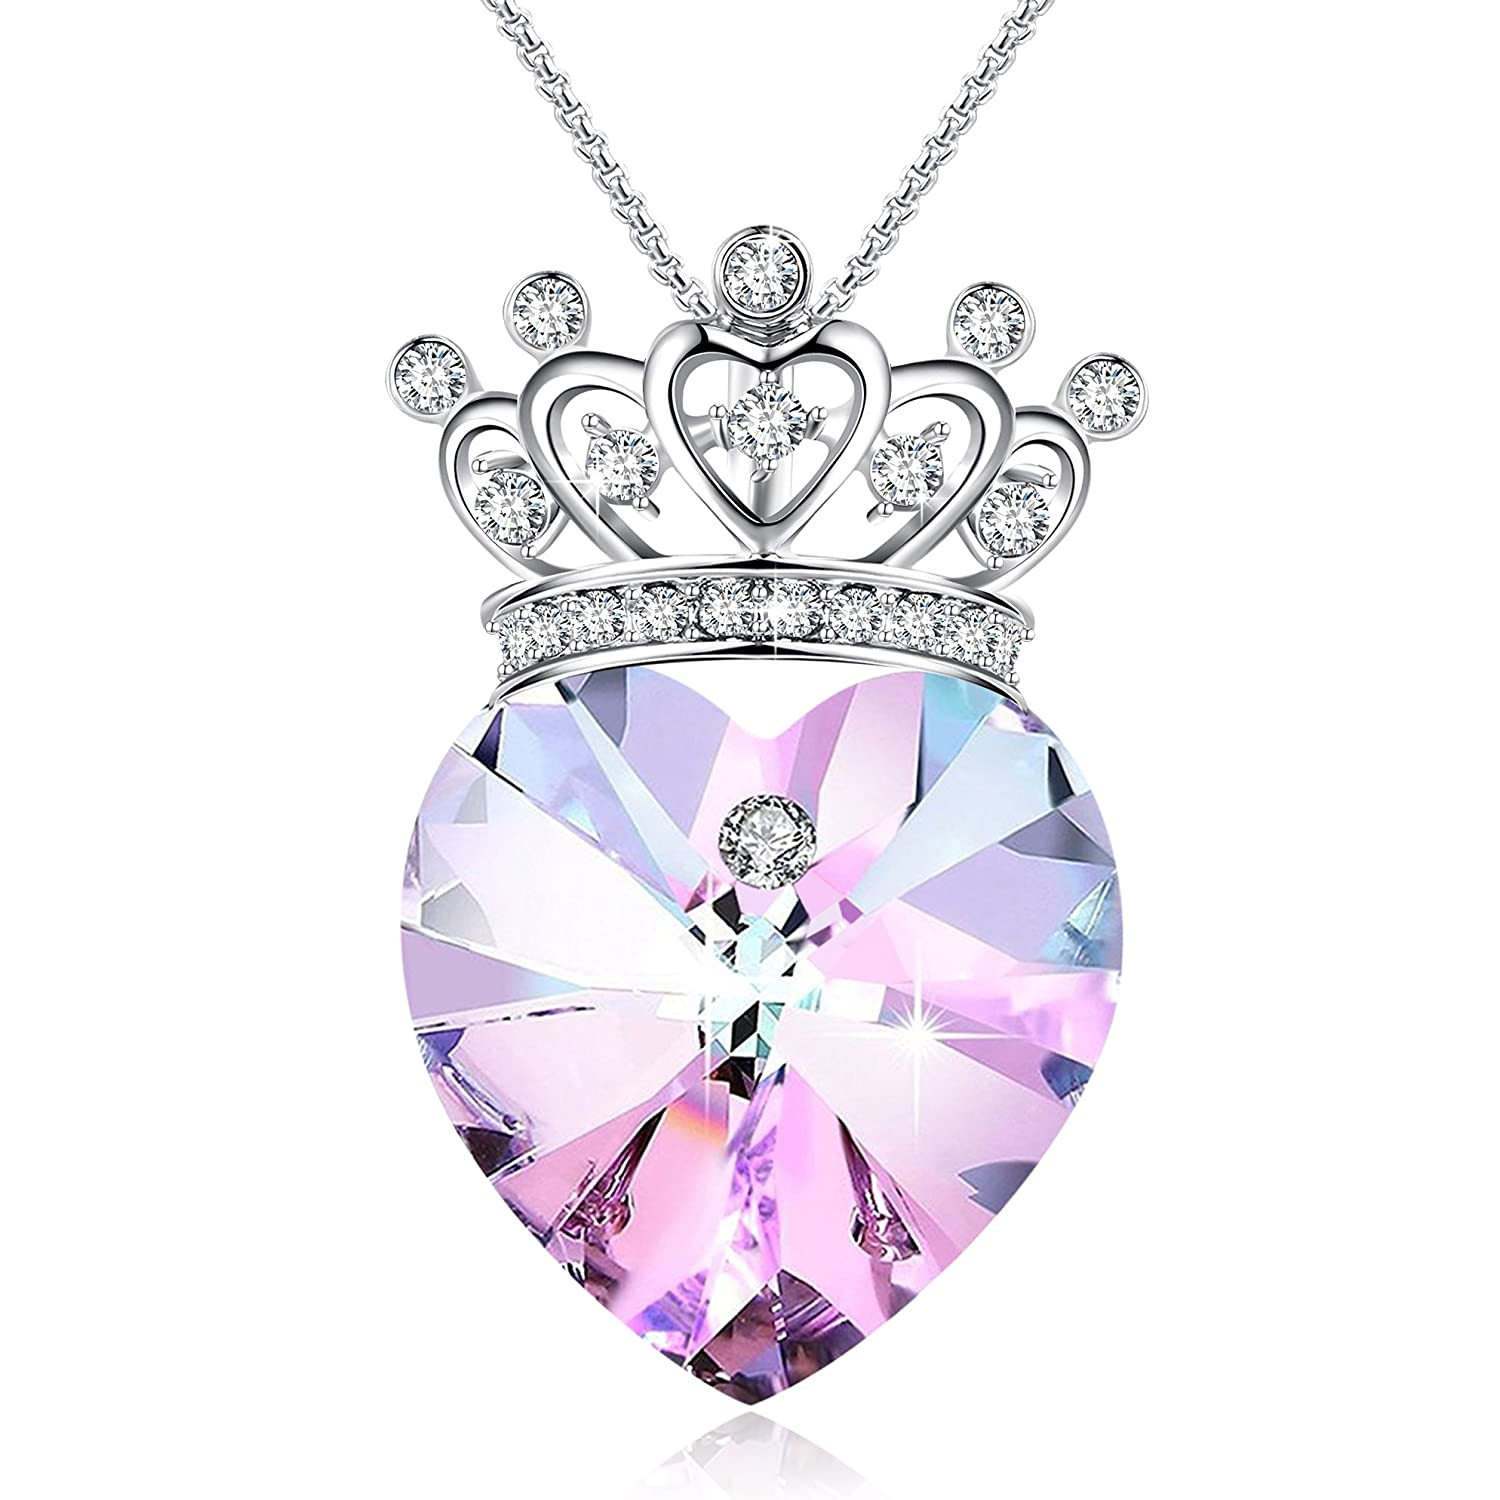 GEORGE SMITH Young Princess Crown Pendant Necklace Heart Shaped Wedding Birthday Jewelry For Girlfriend Daughter Wife Purple Crystals From Swarovski